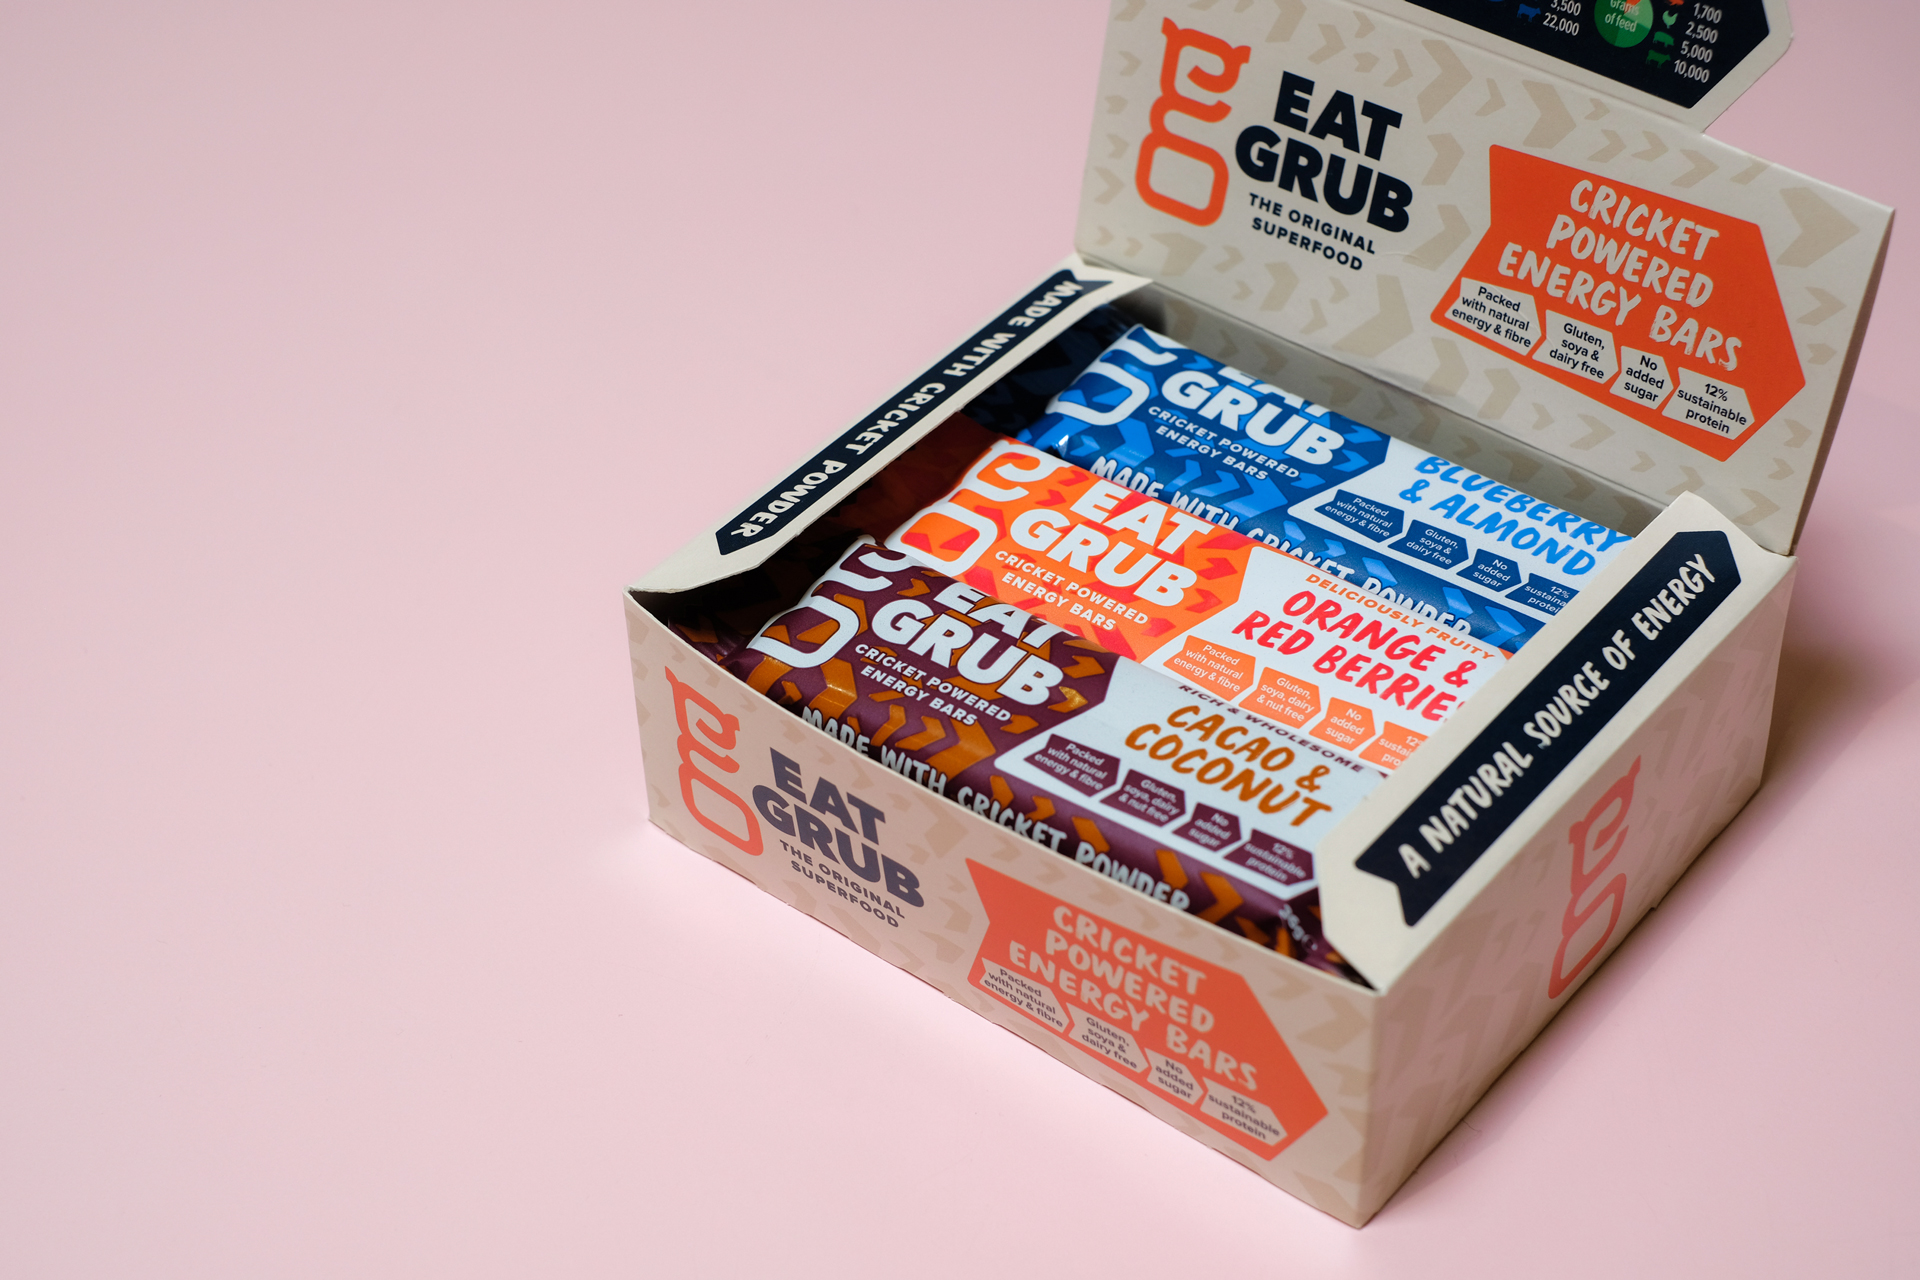 The cricket powered energy bars serve as a gate-way product.